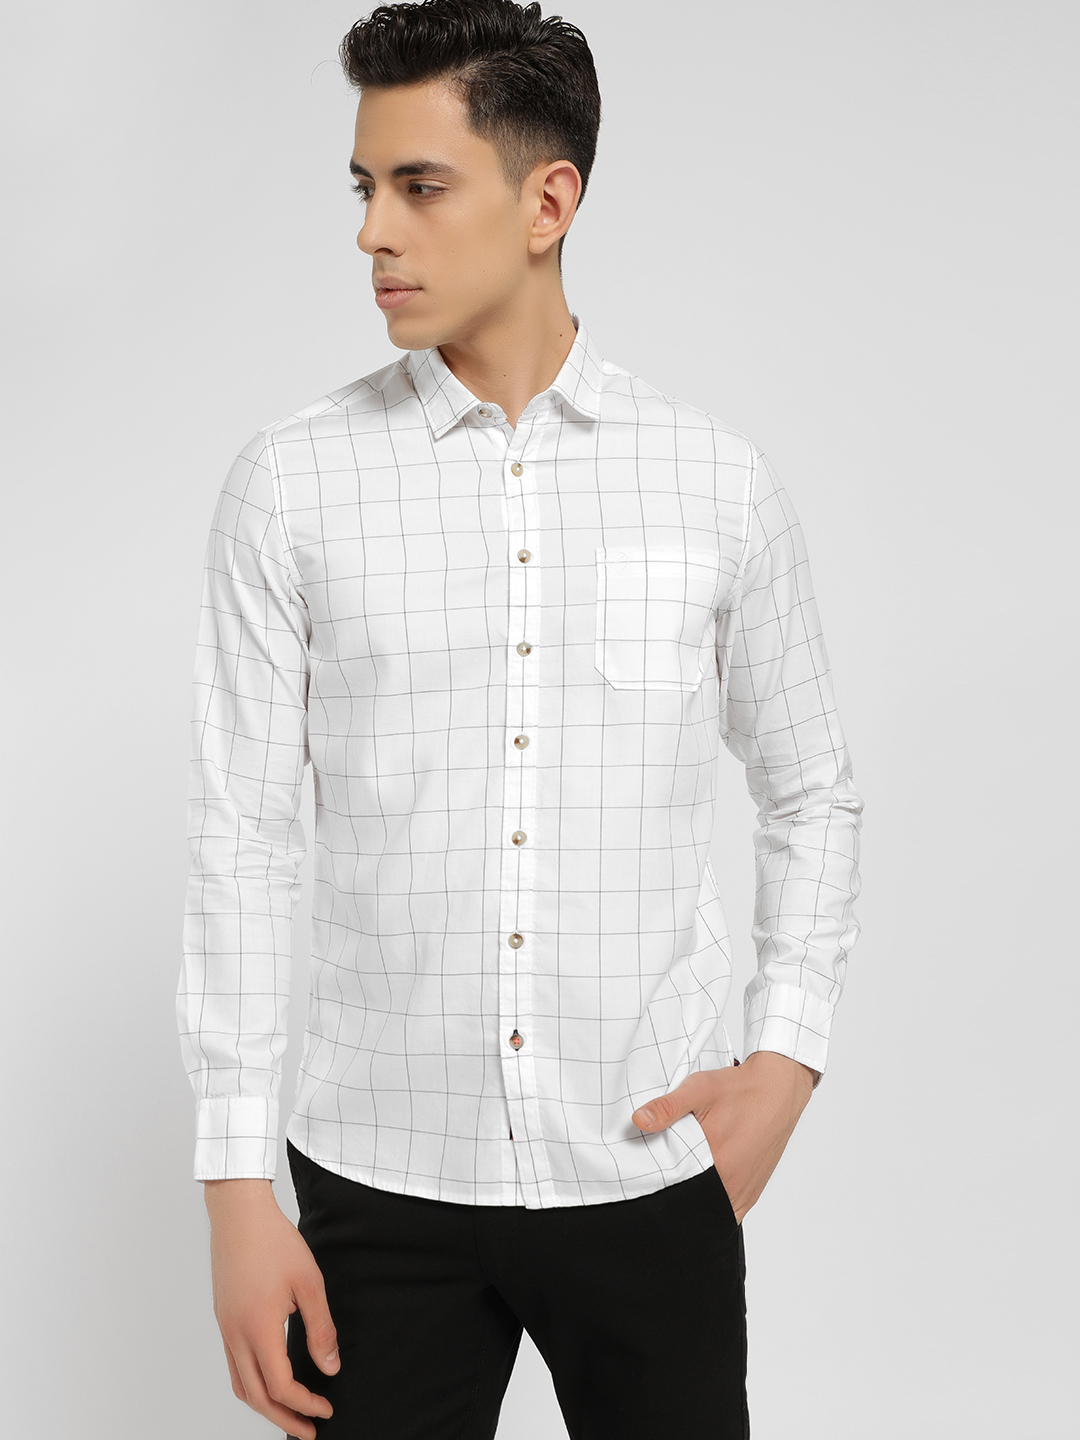 SCULLERS White Windowpane Check Slim Oxford Shirt 1